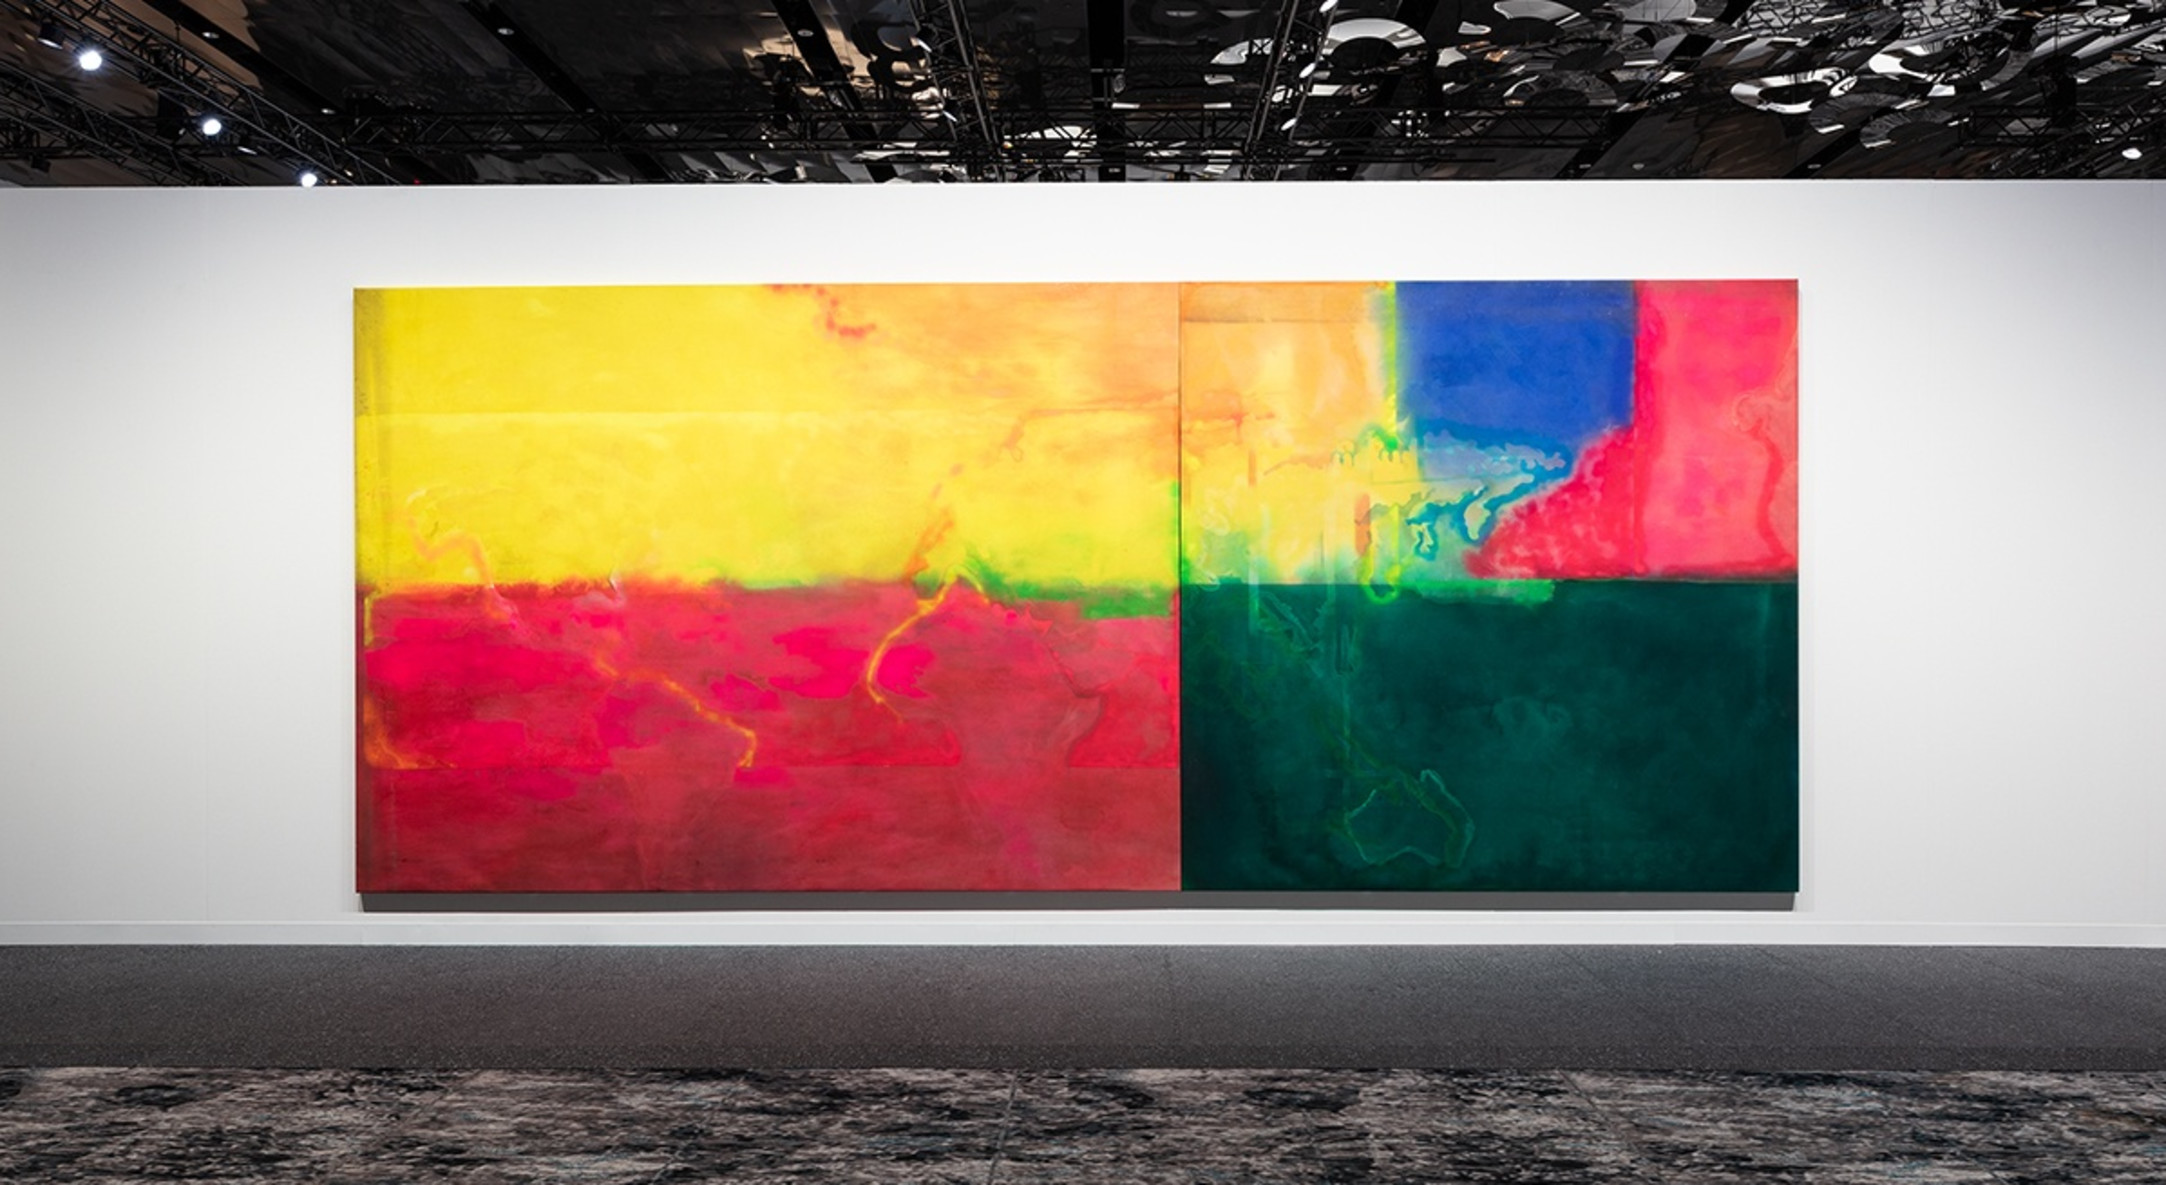 Installation view of Meridians: Frank Bowling in Hales Gallery booth at Art Basel Miami Beach 2019